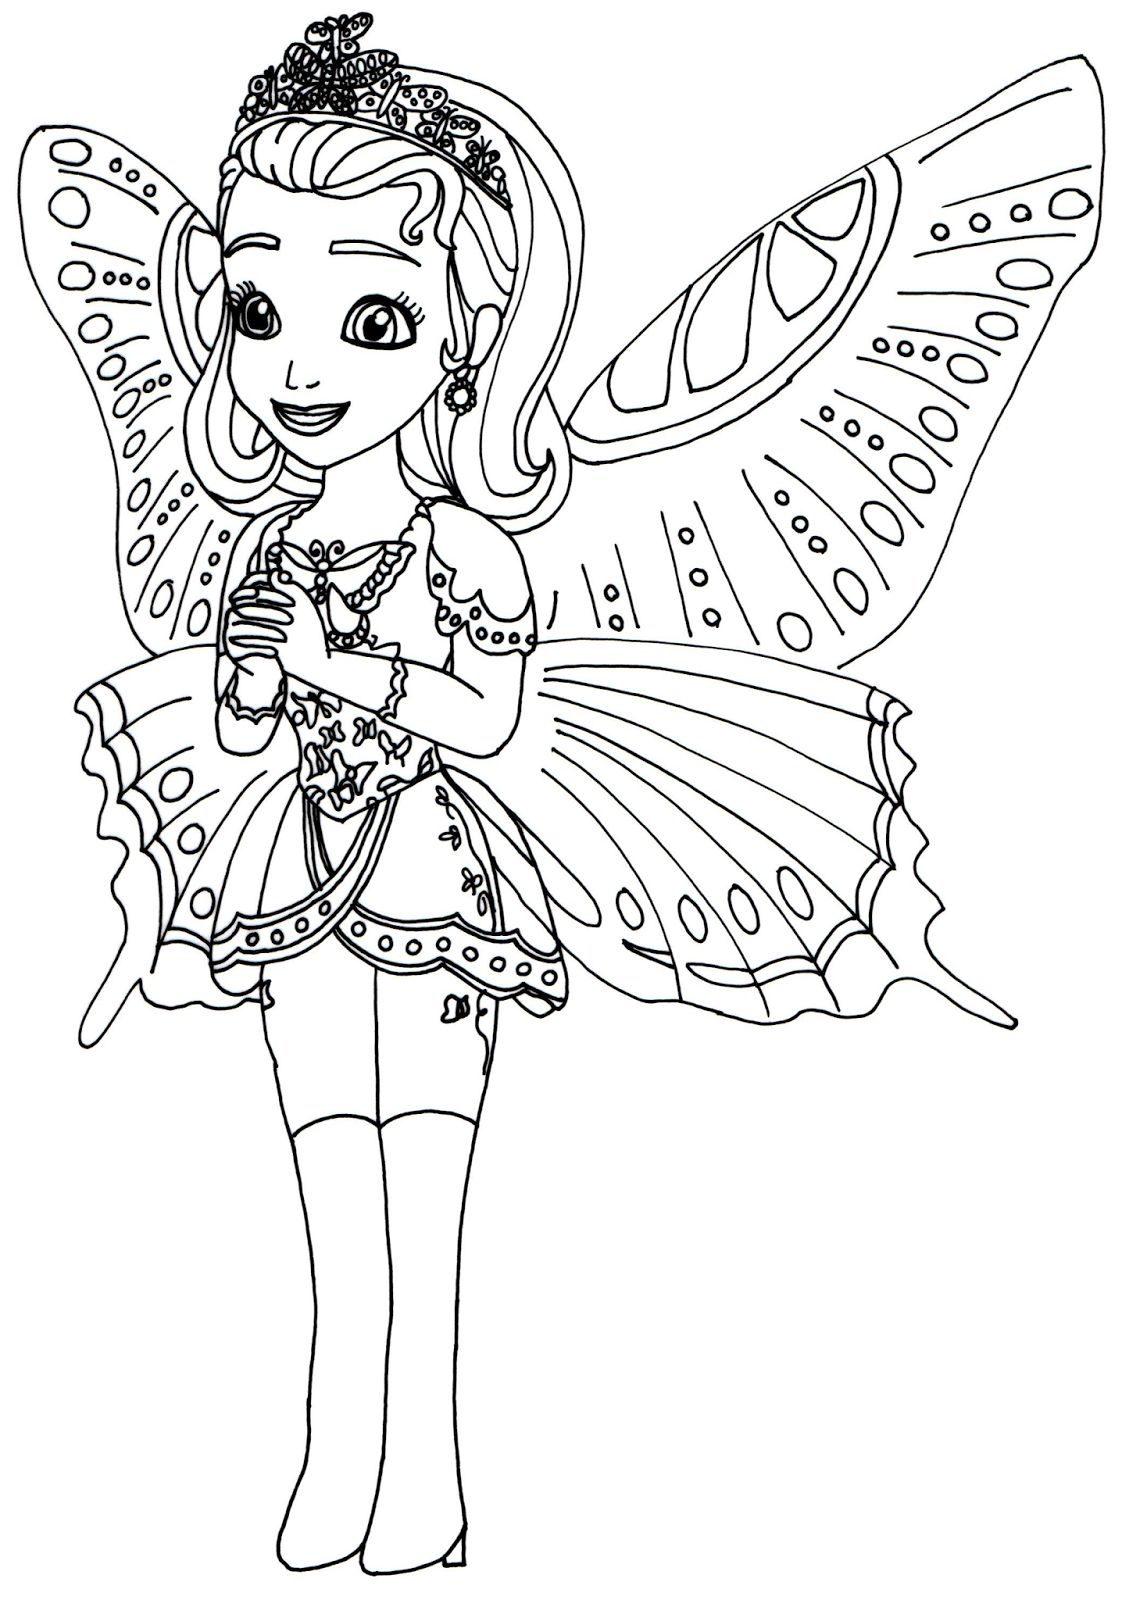 Ausmalbilder Prinzessin Sofia : Sofia The First Coloring Pages Princess Butterfly Sofia The First